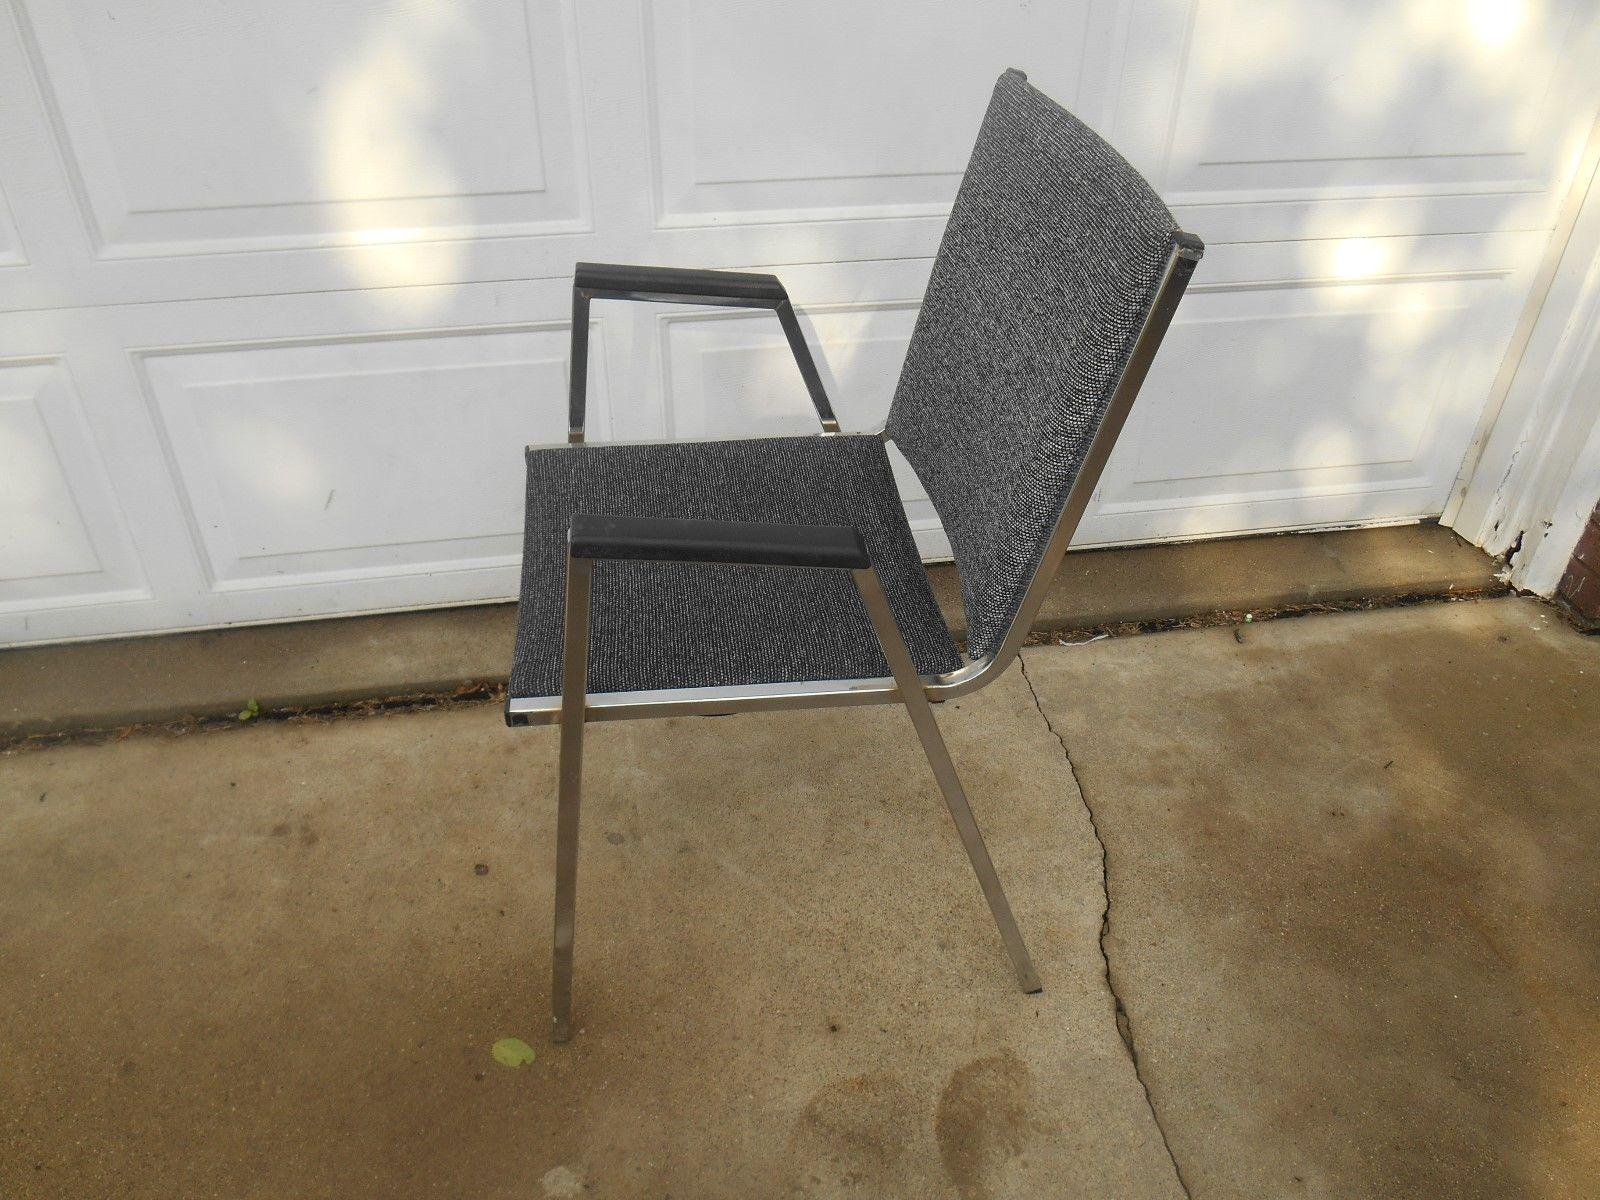 flair design furniture. flair design midcentury office chair image 4 of 6 furniture g